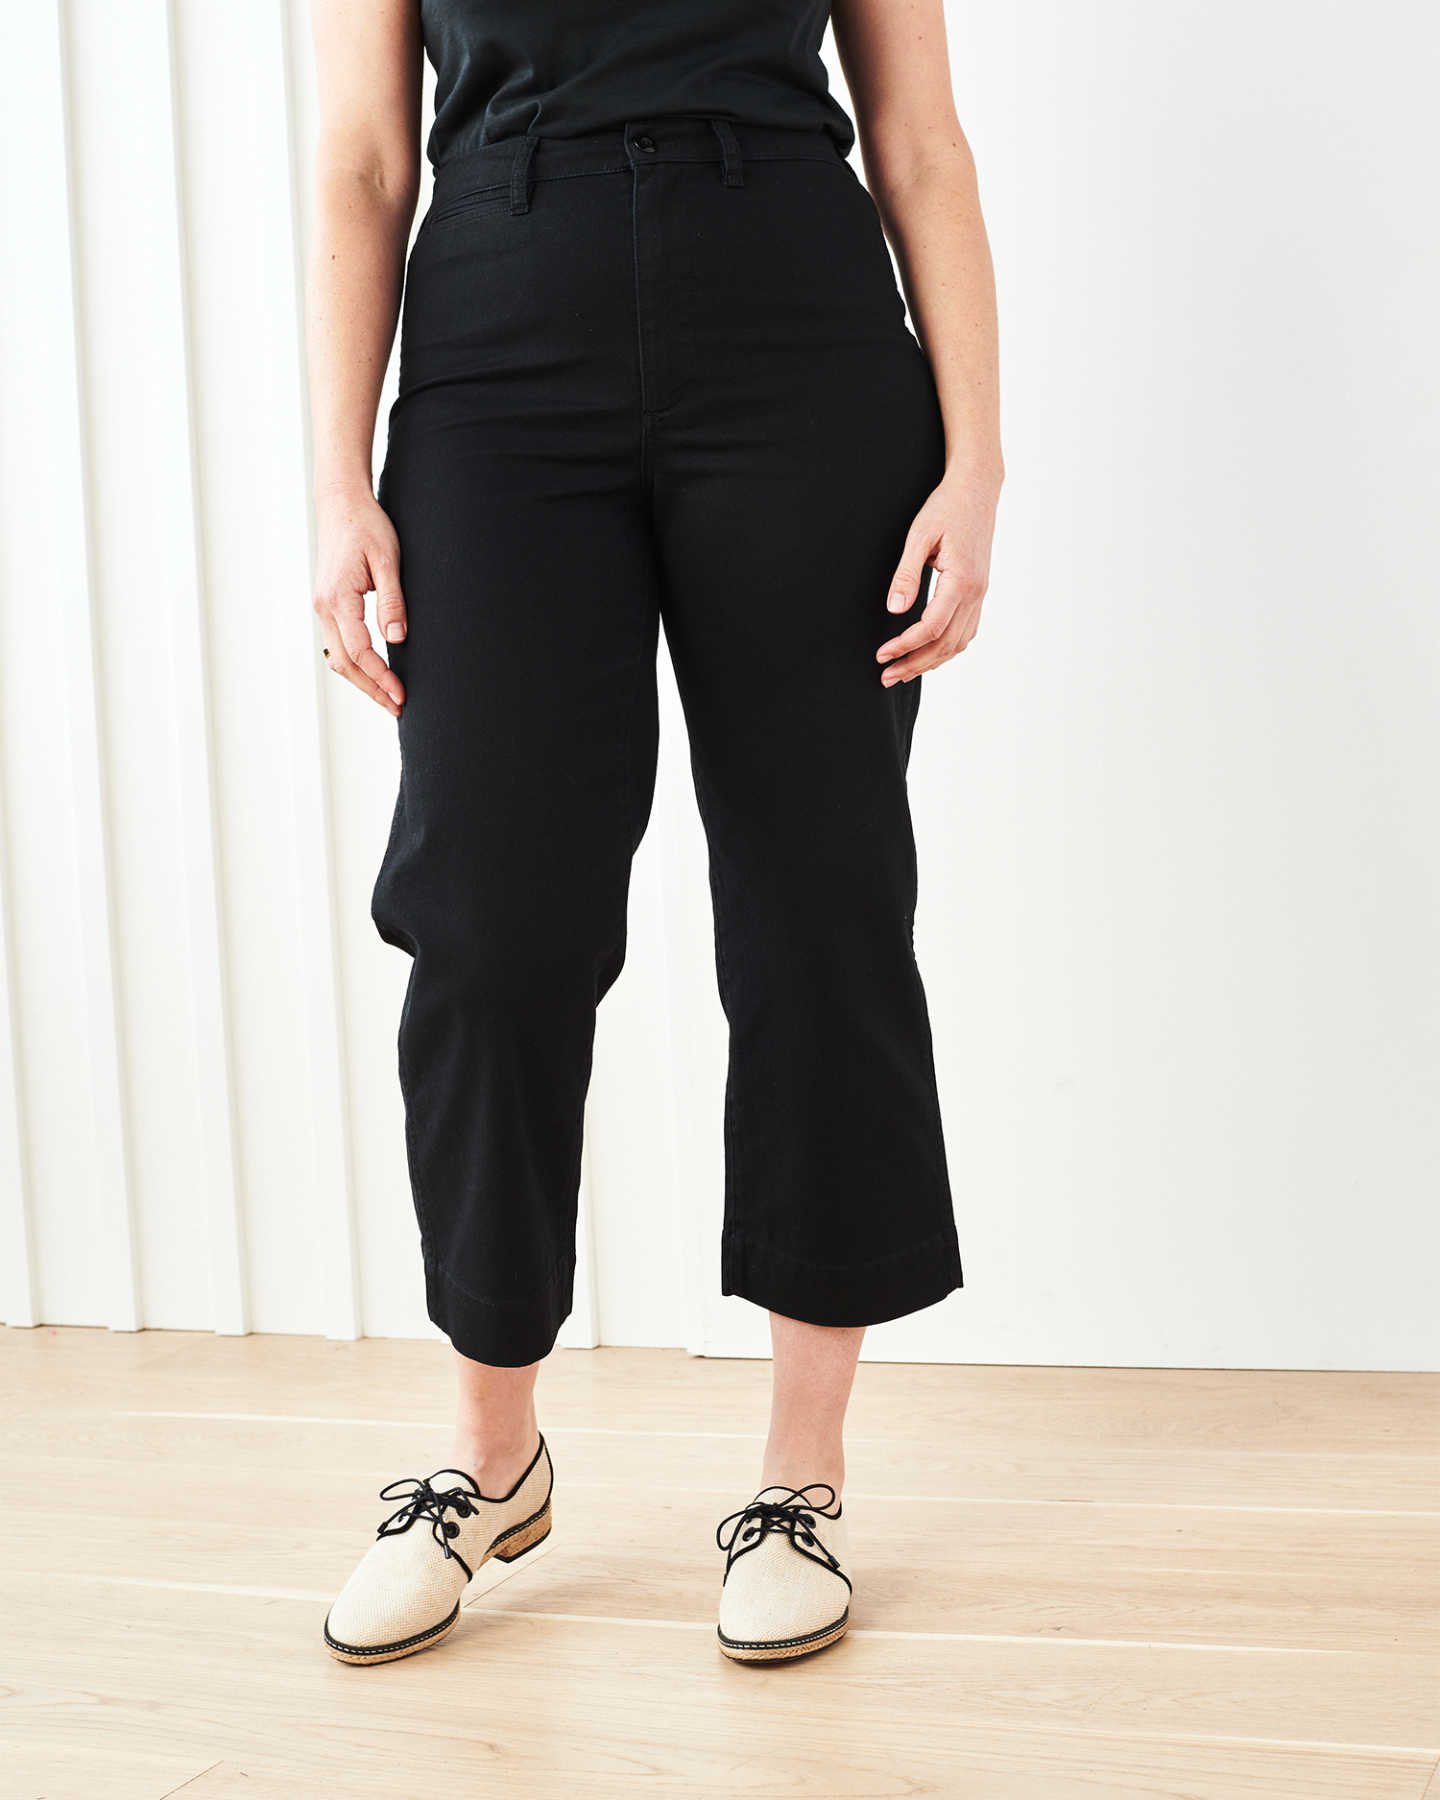 Stretch Cotton Twill Wide-Leg Crop Pant - Black - 7